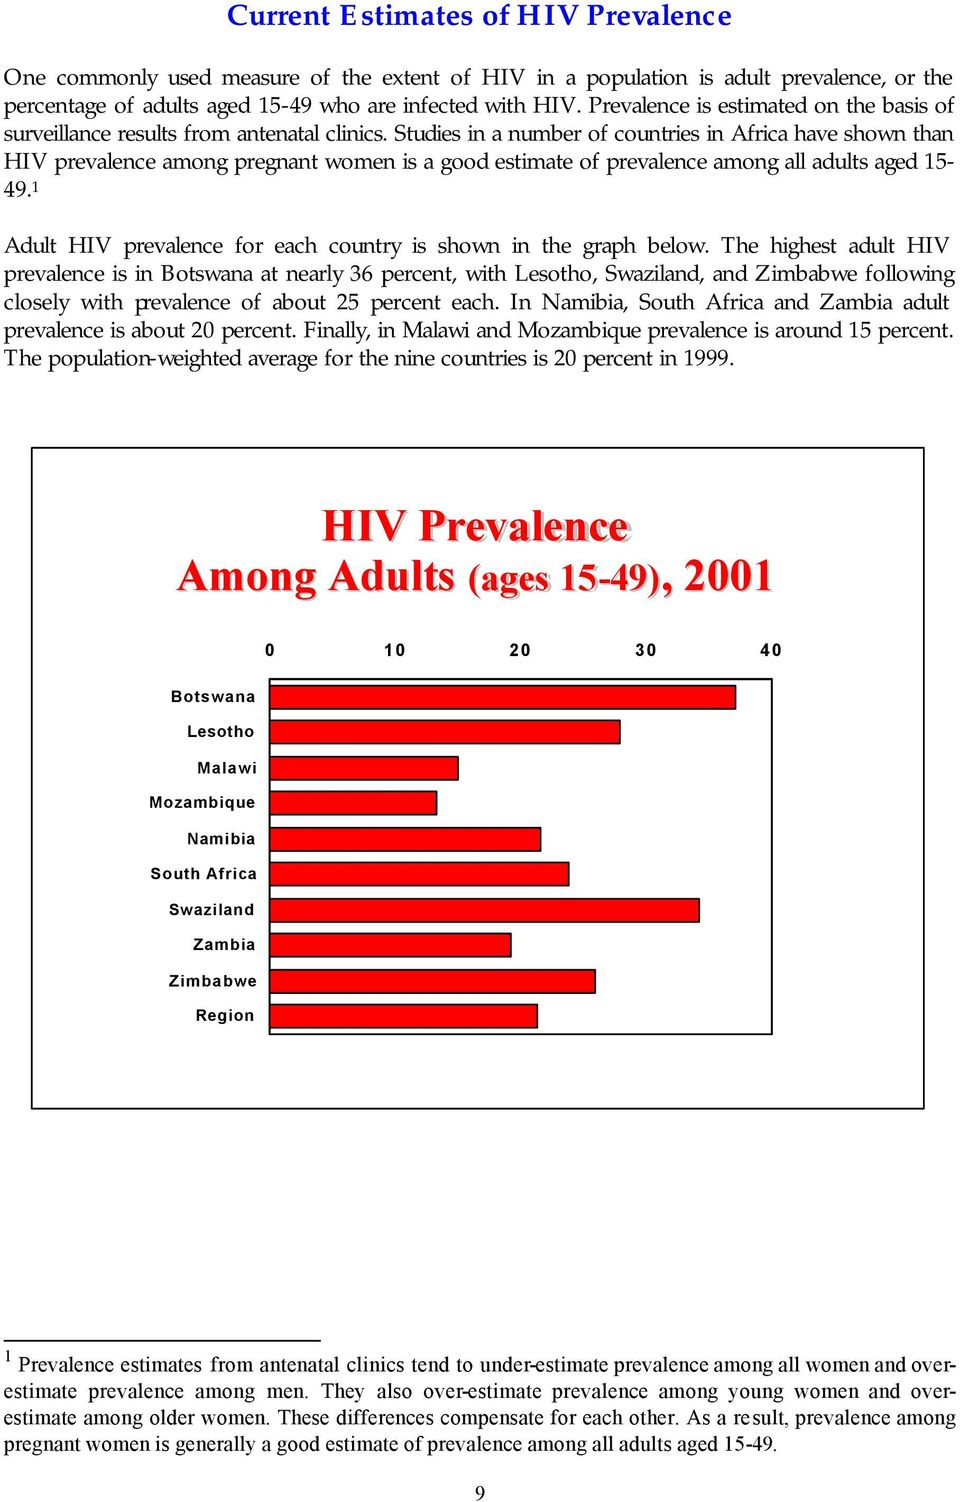 Studies in a number of countries in Africa have shown than HIV prevalence among pregnant women is a good estimate of prevalence among all adults aged 15-49.